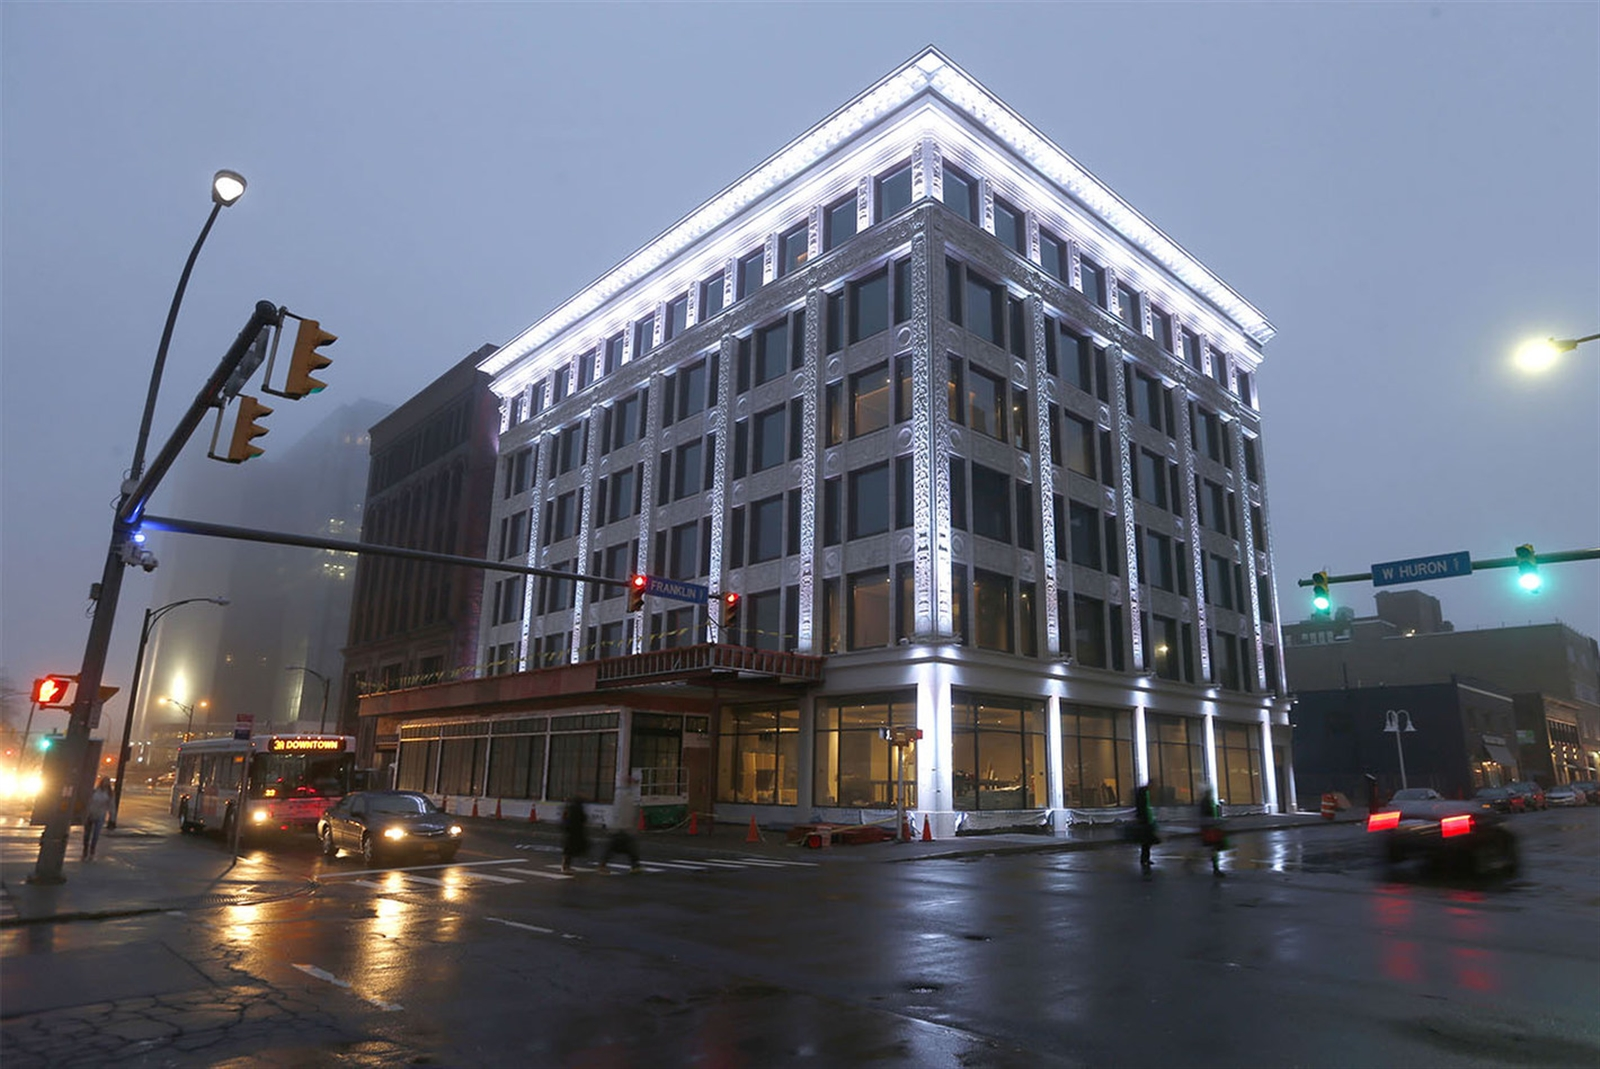 The Curtiss Hotel, a long-vacant former office building, is set to open in April. (Robert Kirkham/Buffalo News)